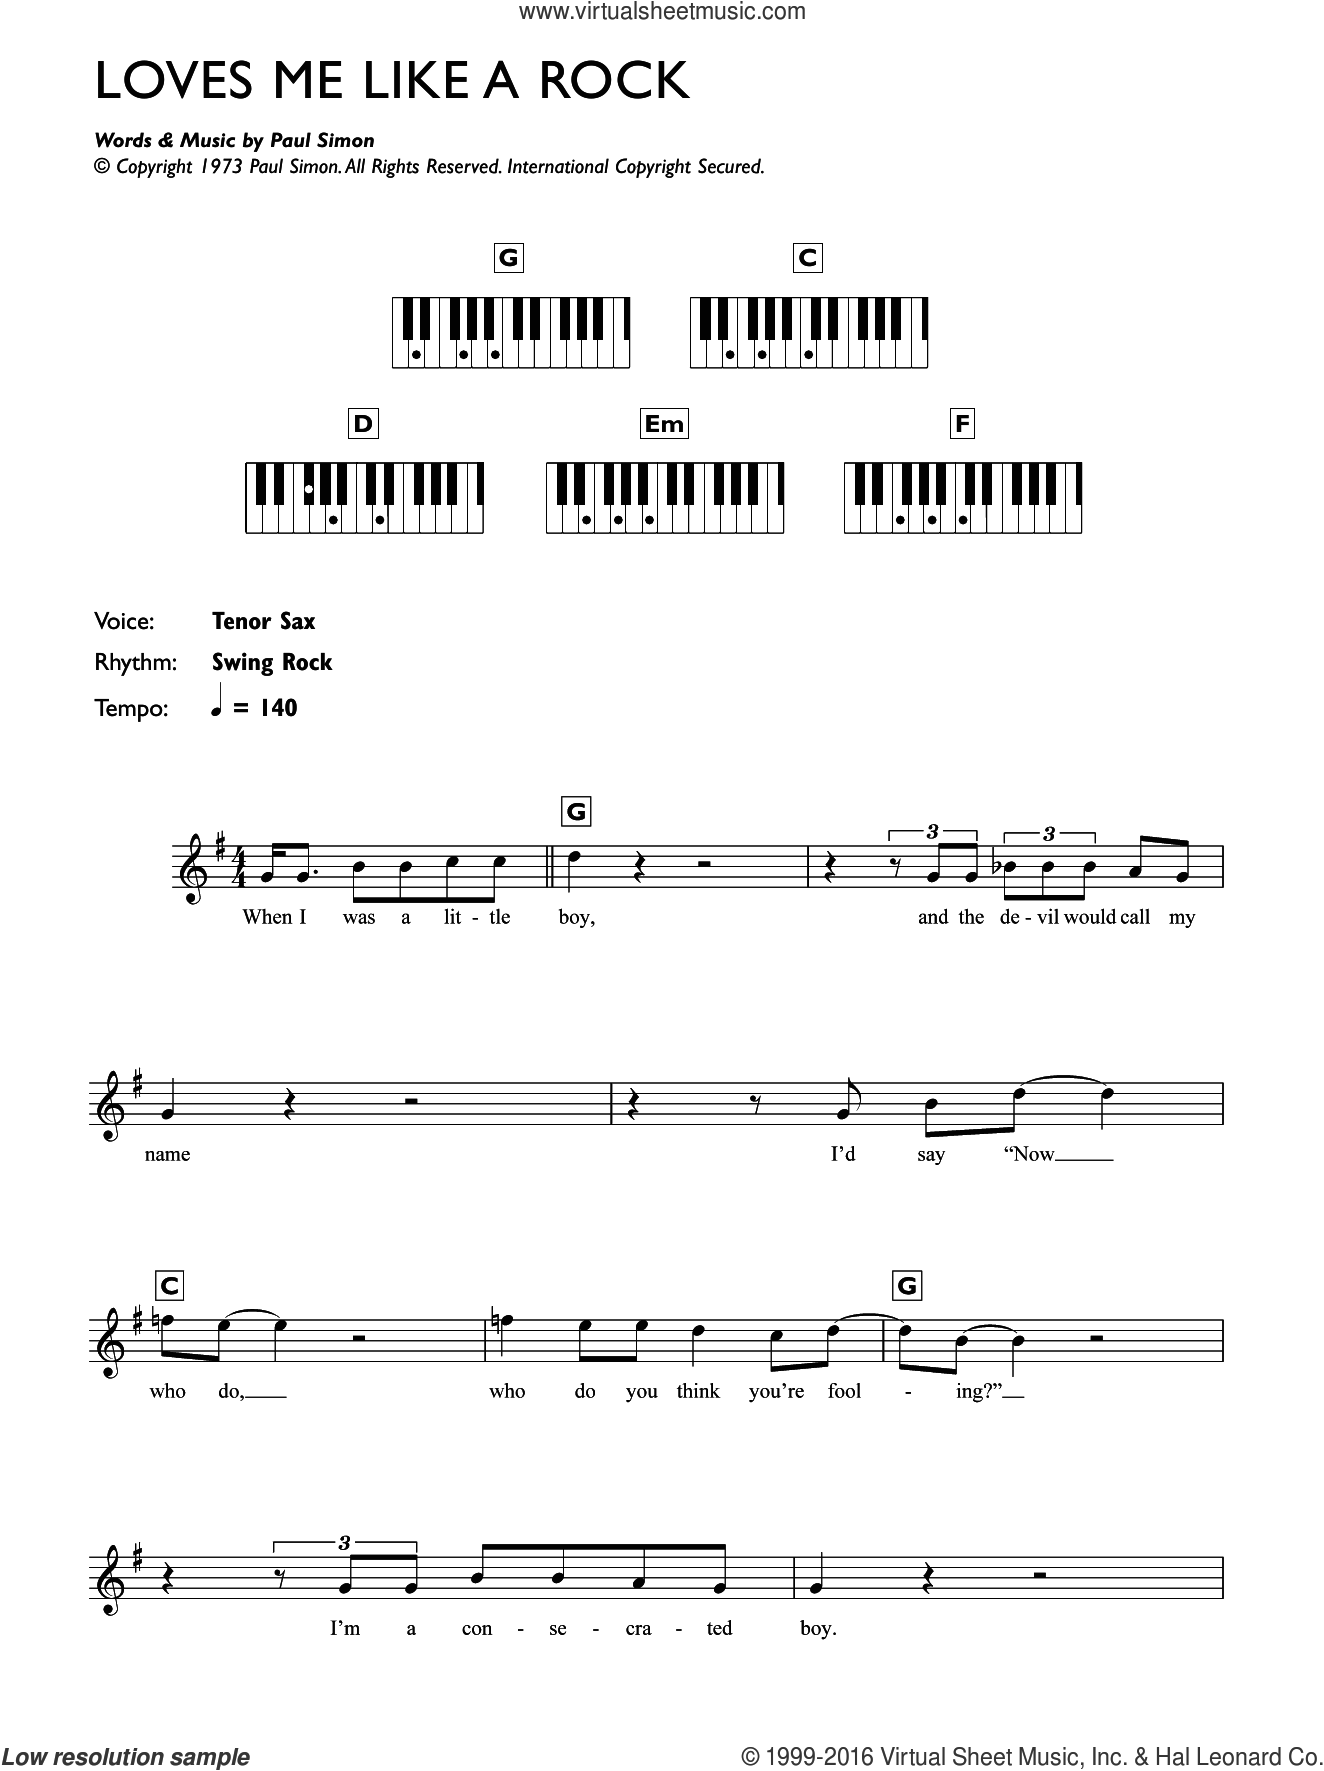 Loves Me Like A Rock sheet music for piano solo (chords, lyrics, melody) by Paul Simon